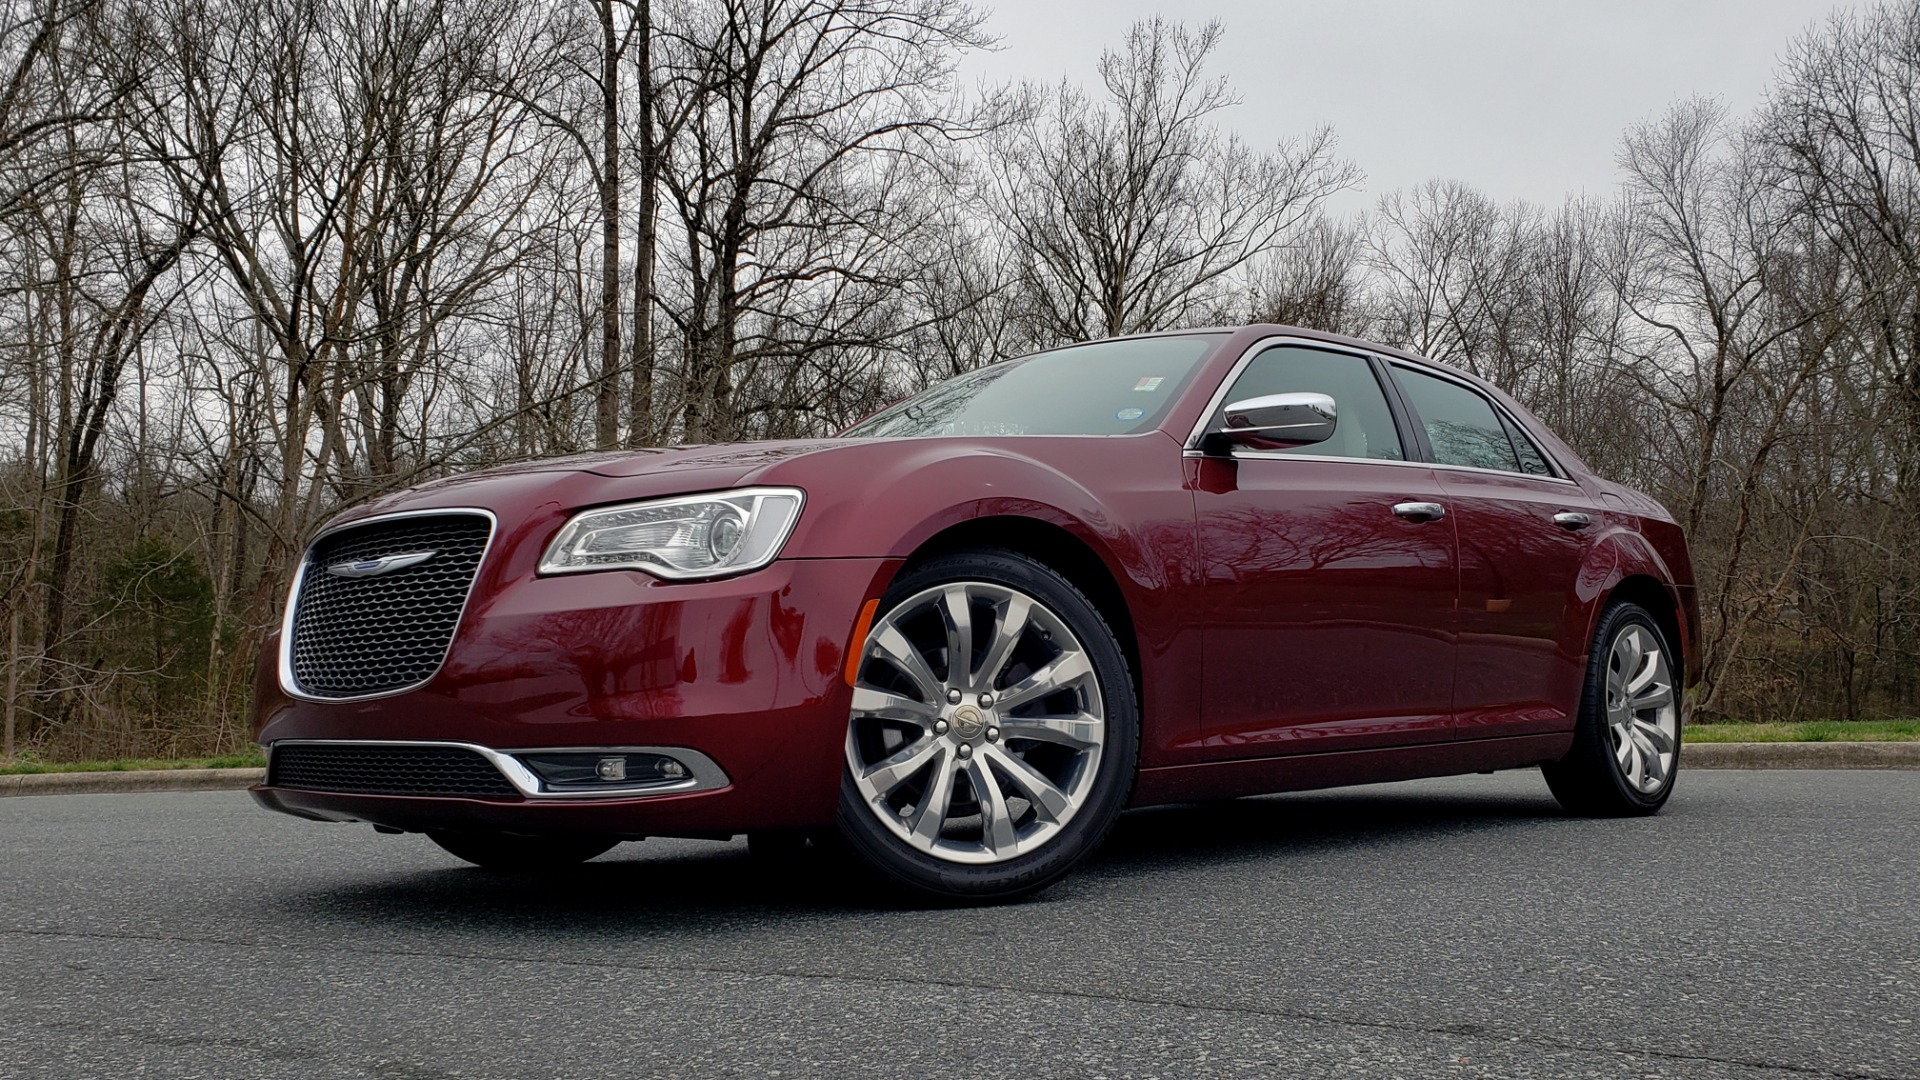 Used 2019 Chrysler 300 LIMITED / 3.6L V6 / 8-SPD AUTO / LEATHER / REARVIEW for sale Sold at Formula Imports in Charlotte NC 28227 2